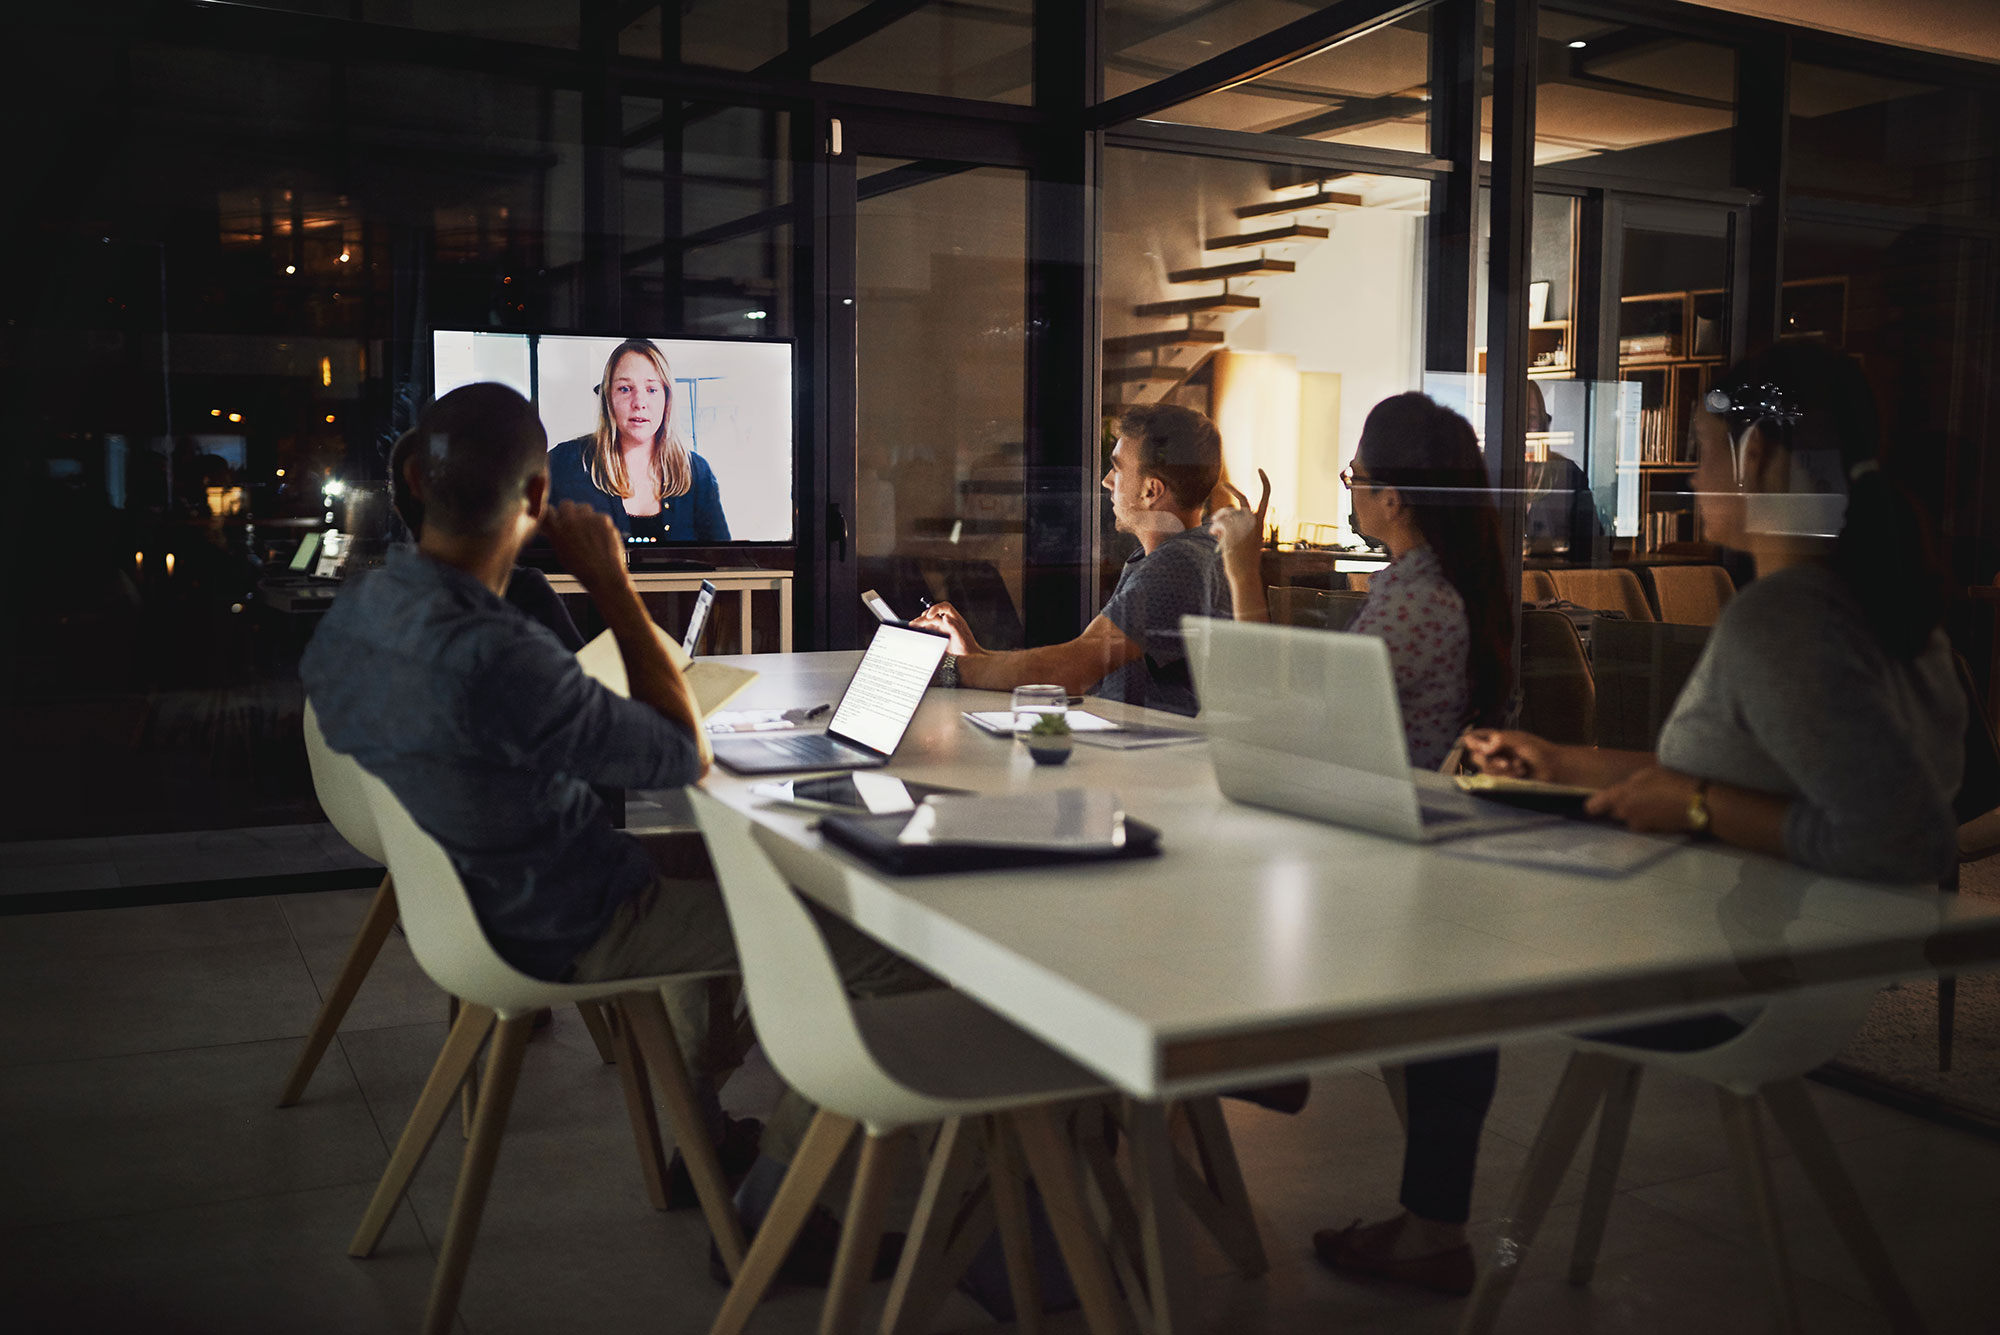 business-meeting-web-conference-video-call-collaboration